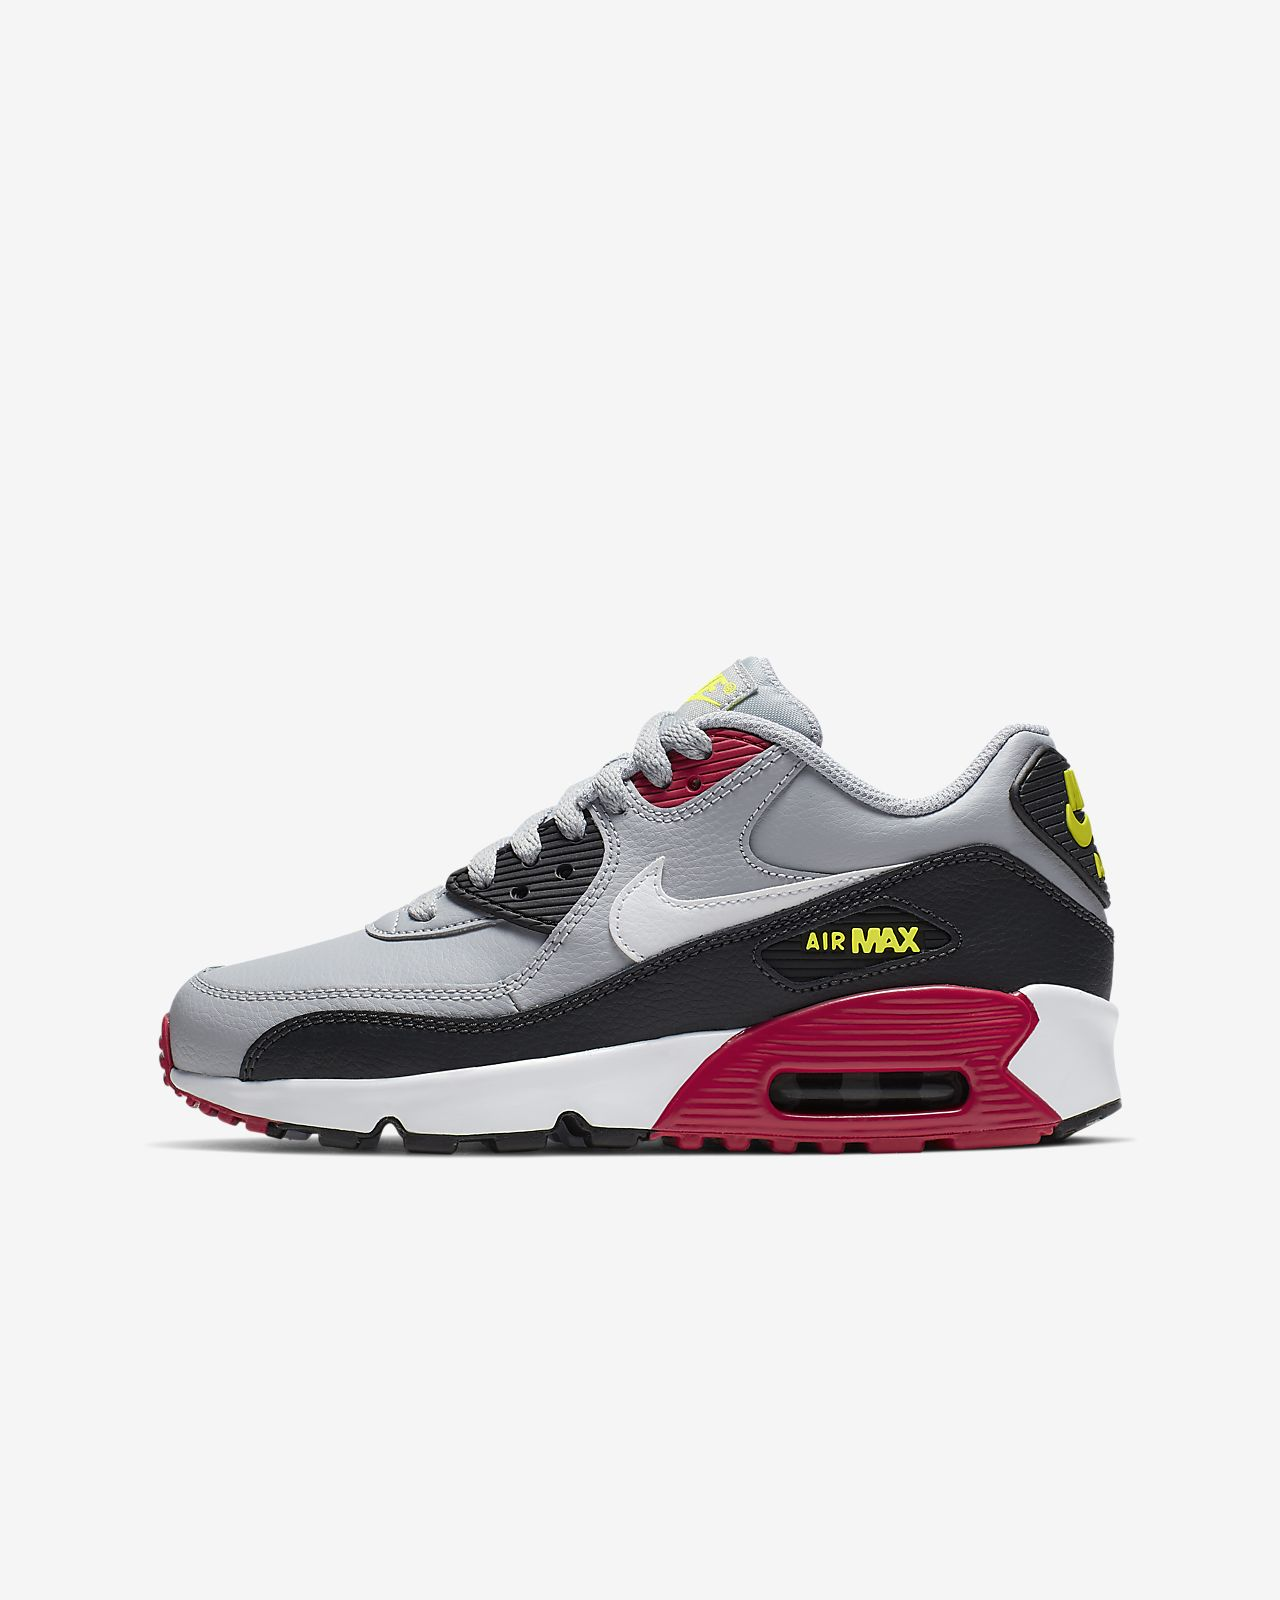 new concept c39b0 b3ab1 Big Kids  Shoe. Nike Air Max 90 Leather